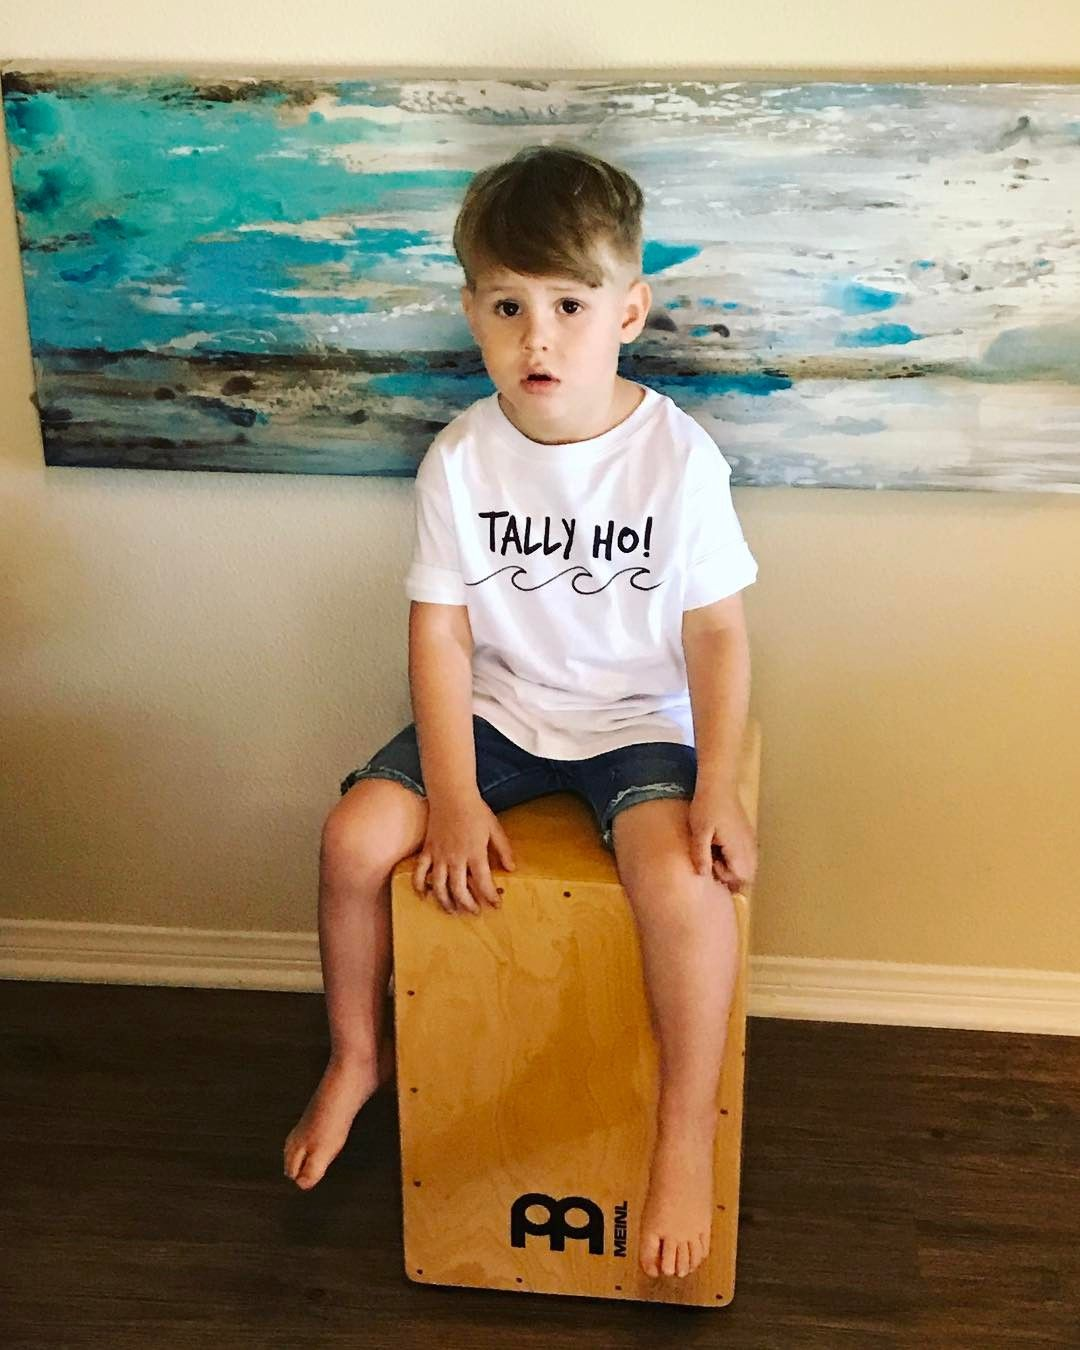 Caught him mid-drum in his Tally Ho! Shirt  #tallyho #surferboy #beachkid #surfmom #beachmom #beachfam #beachlife #coveandcapri Shop at http://CoveAndCapri.com